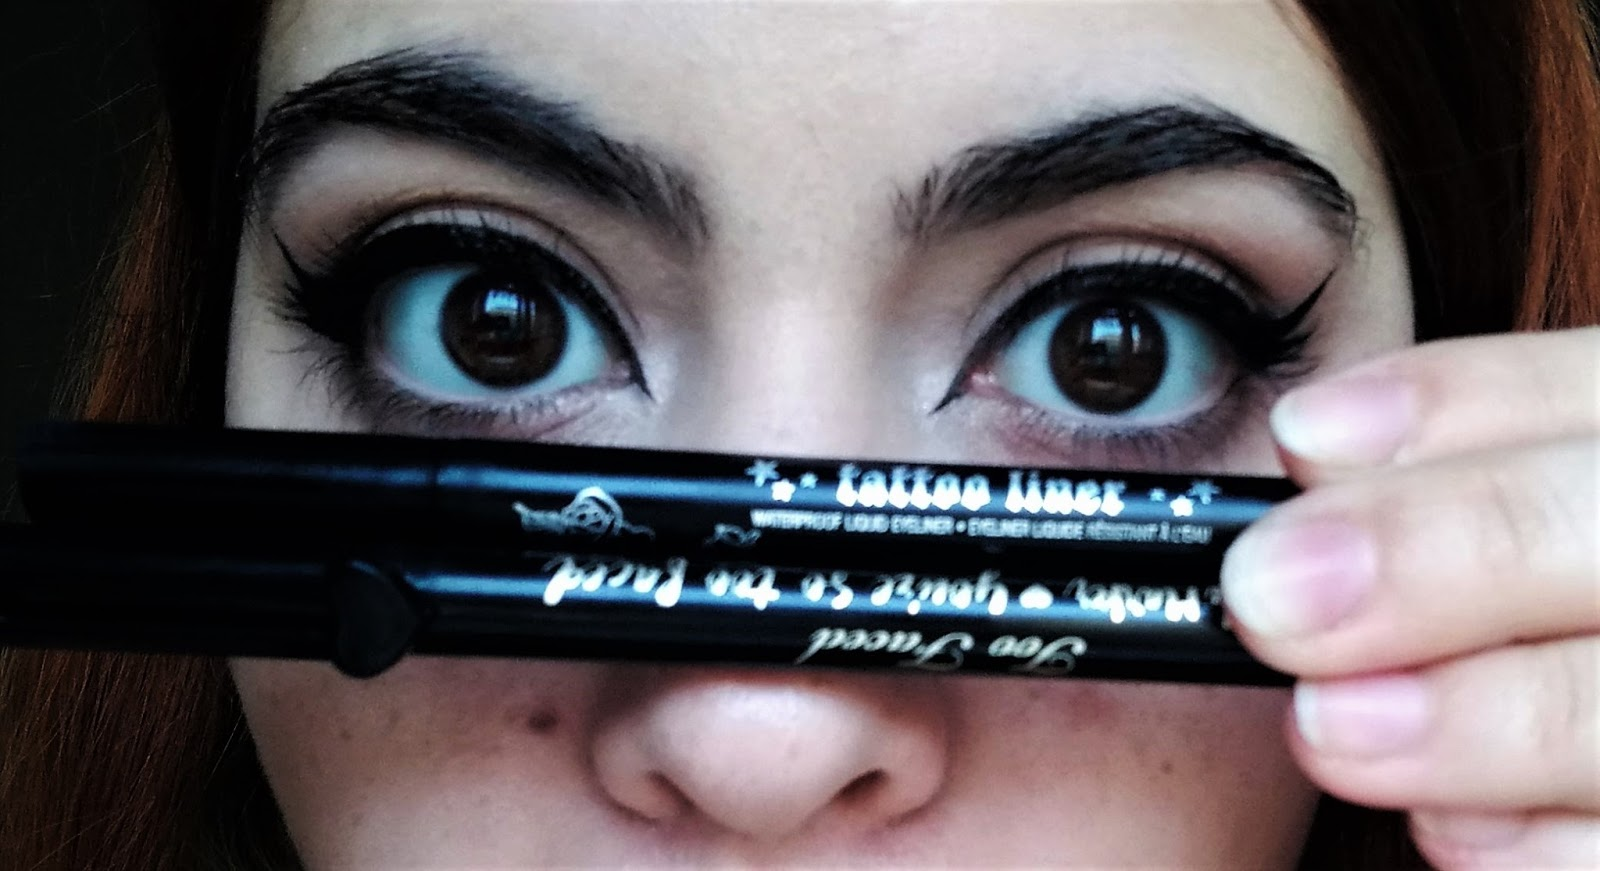 Nixe S Kat Von D Tattoo Liner Vs Too Faced Sketch Marker Liquid